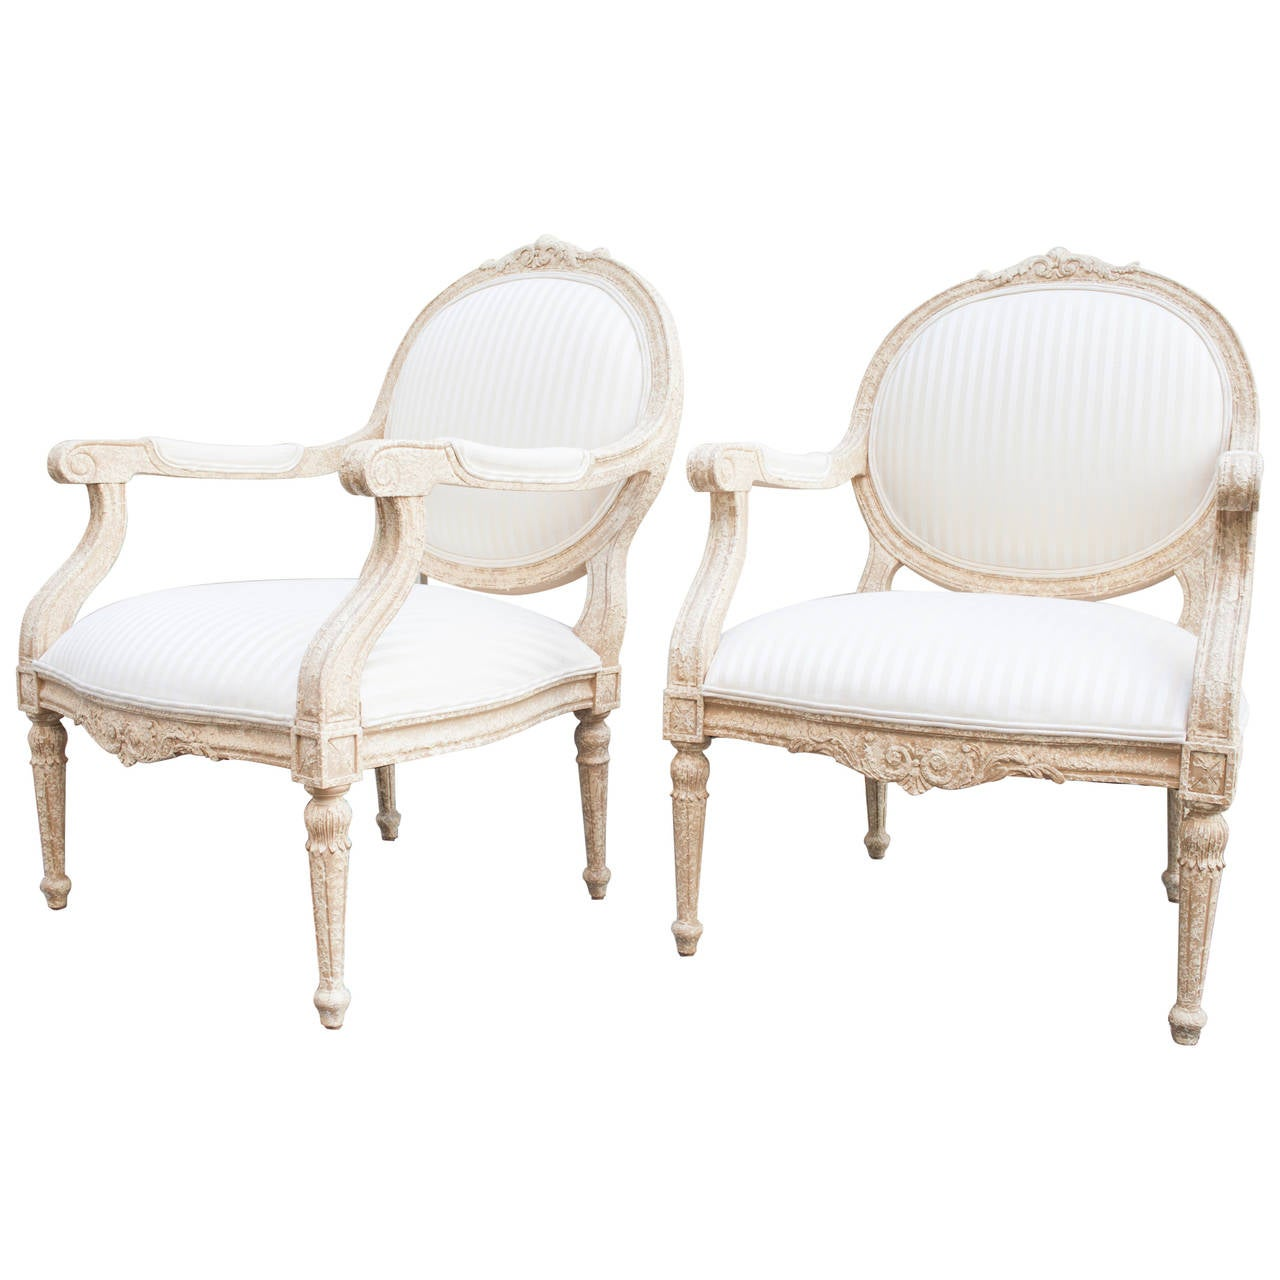 pair of louis xvi style marquise fauteuils for sale at 1stdibs. Black Bedroom Furniture Sets. Home Design Ideas